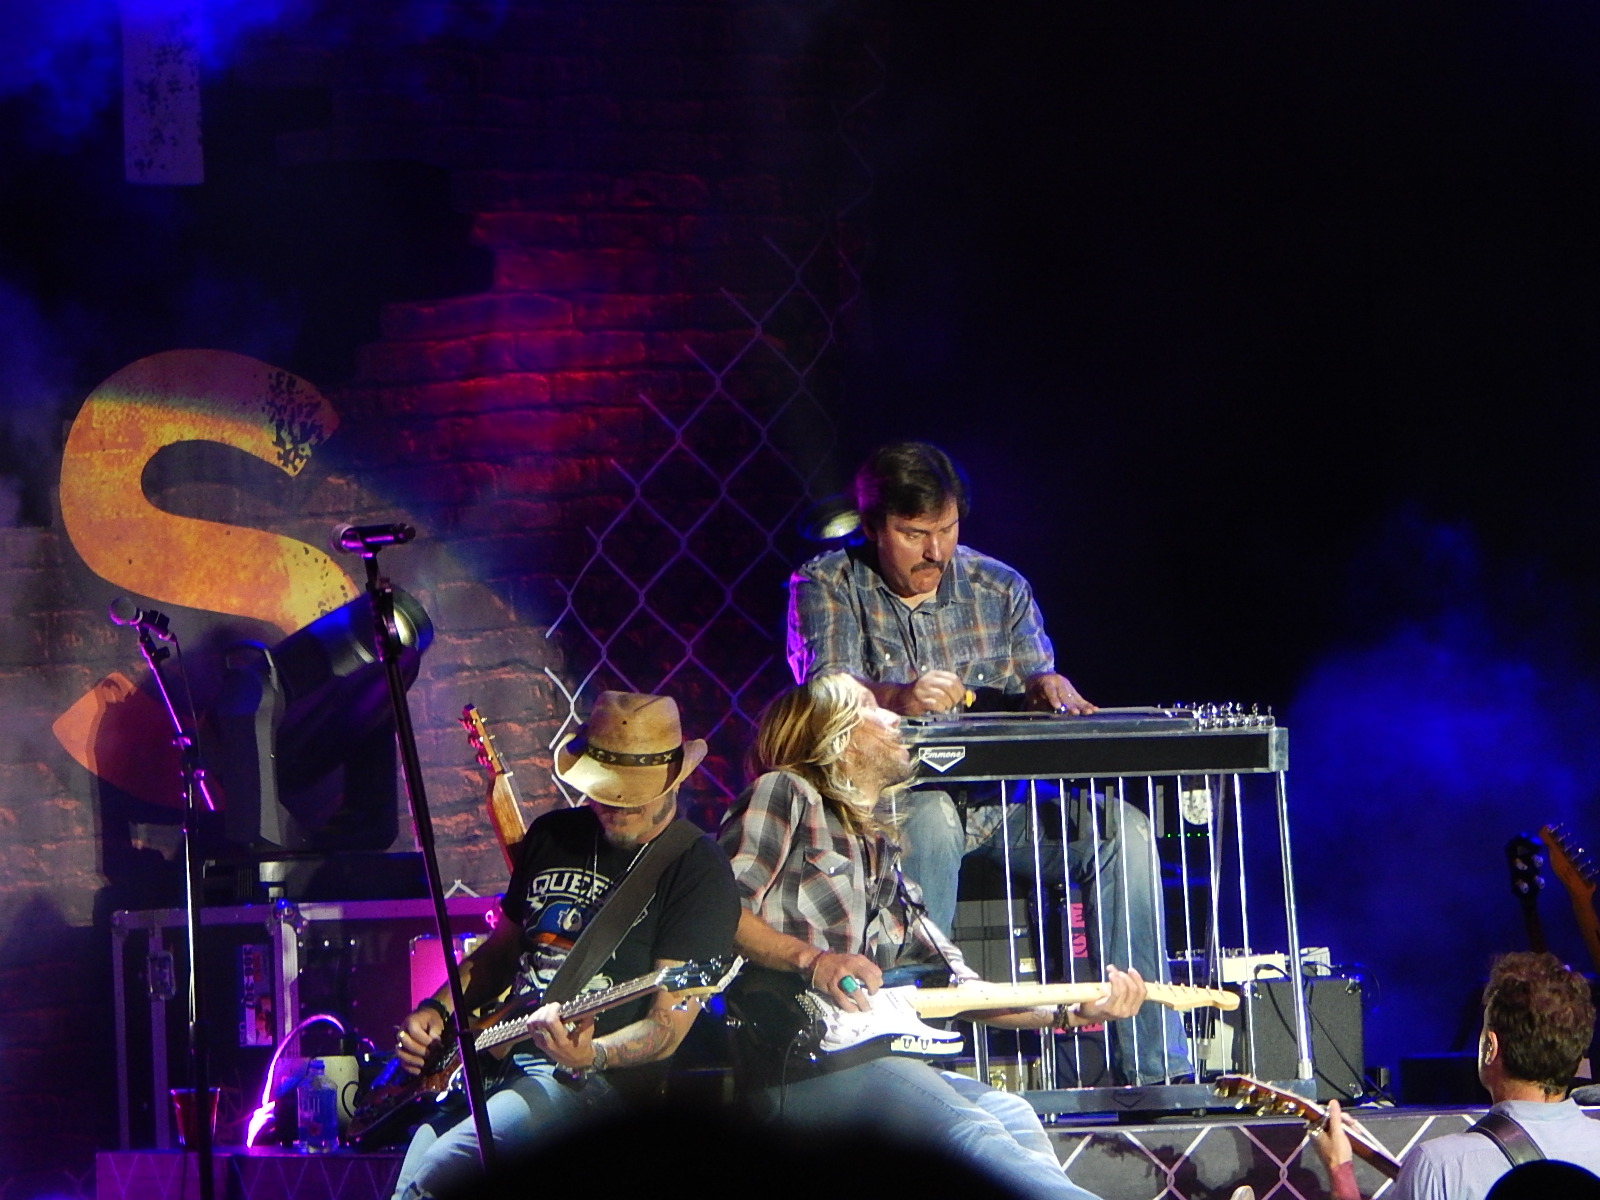 dueling lead and steel guitar rodney atkins band in concert